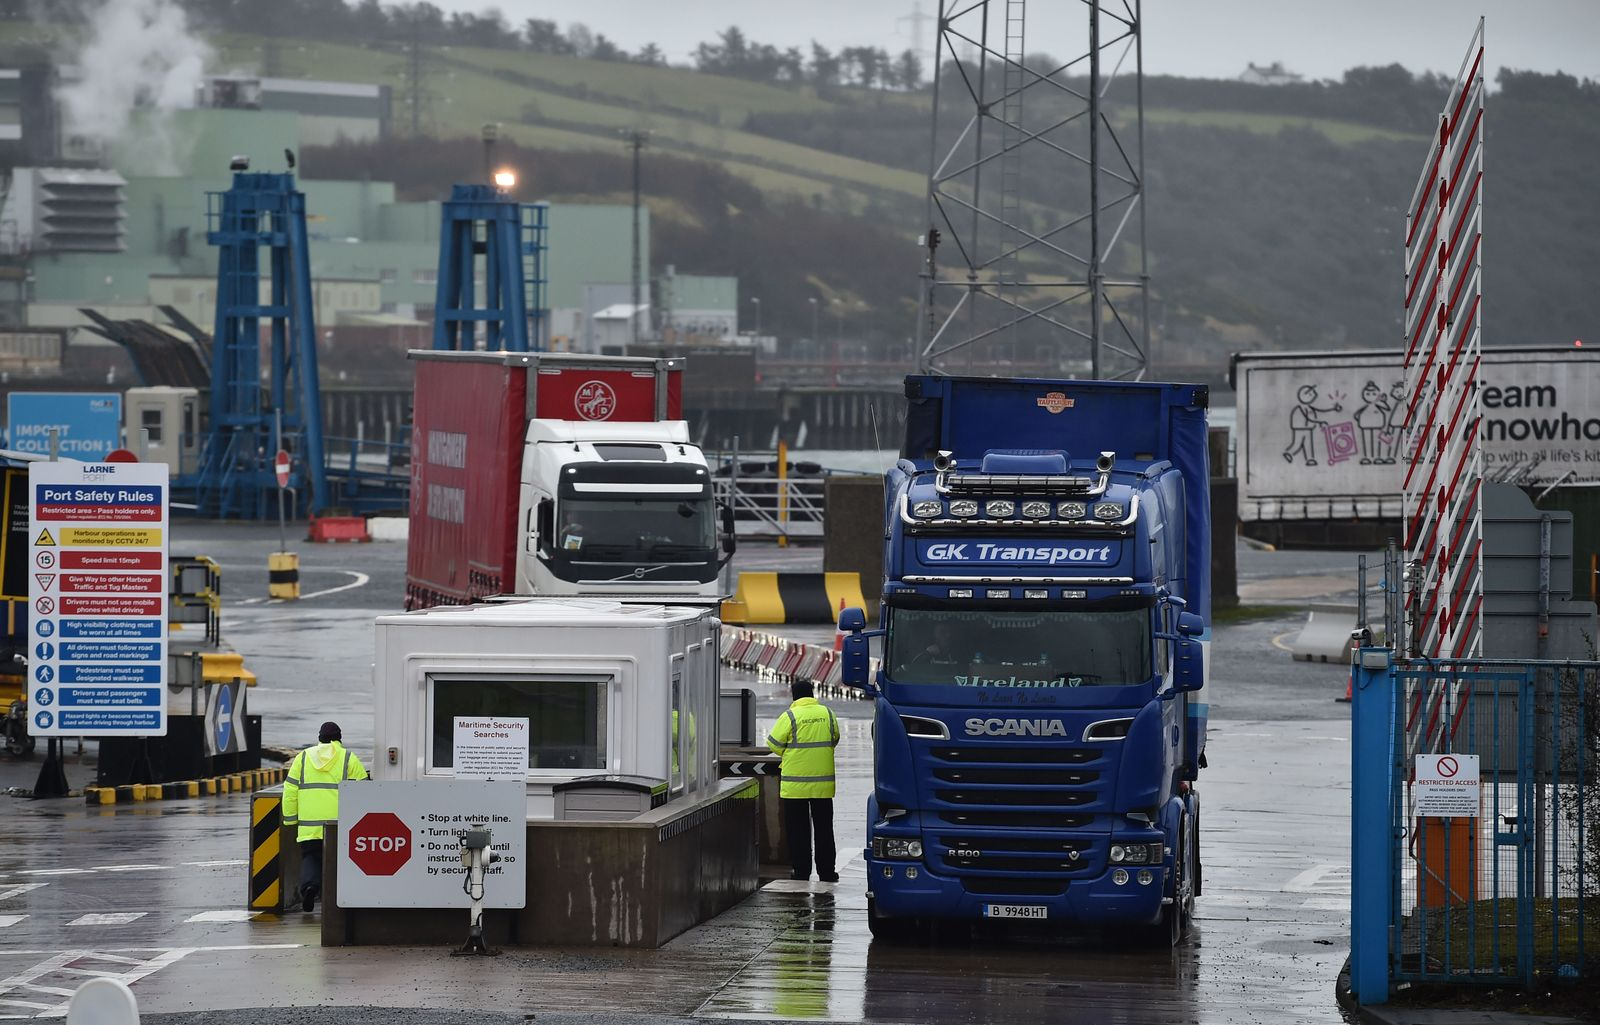 Northern Irish Ports Pull Inspectors Over Safety Concerns